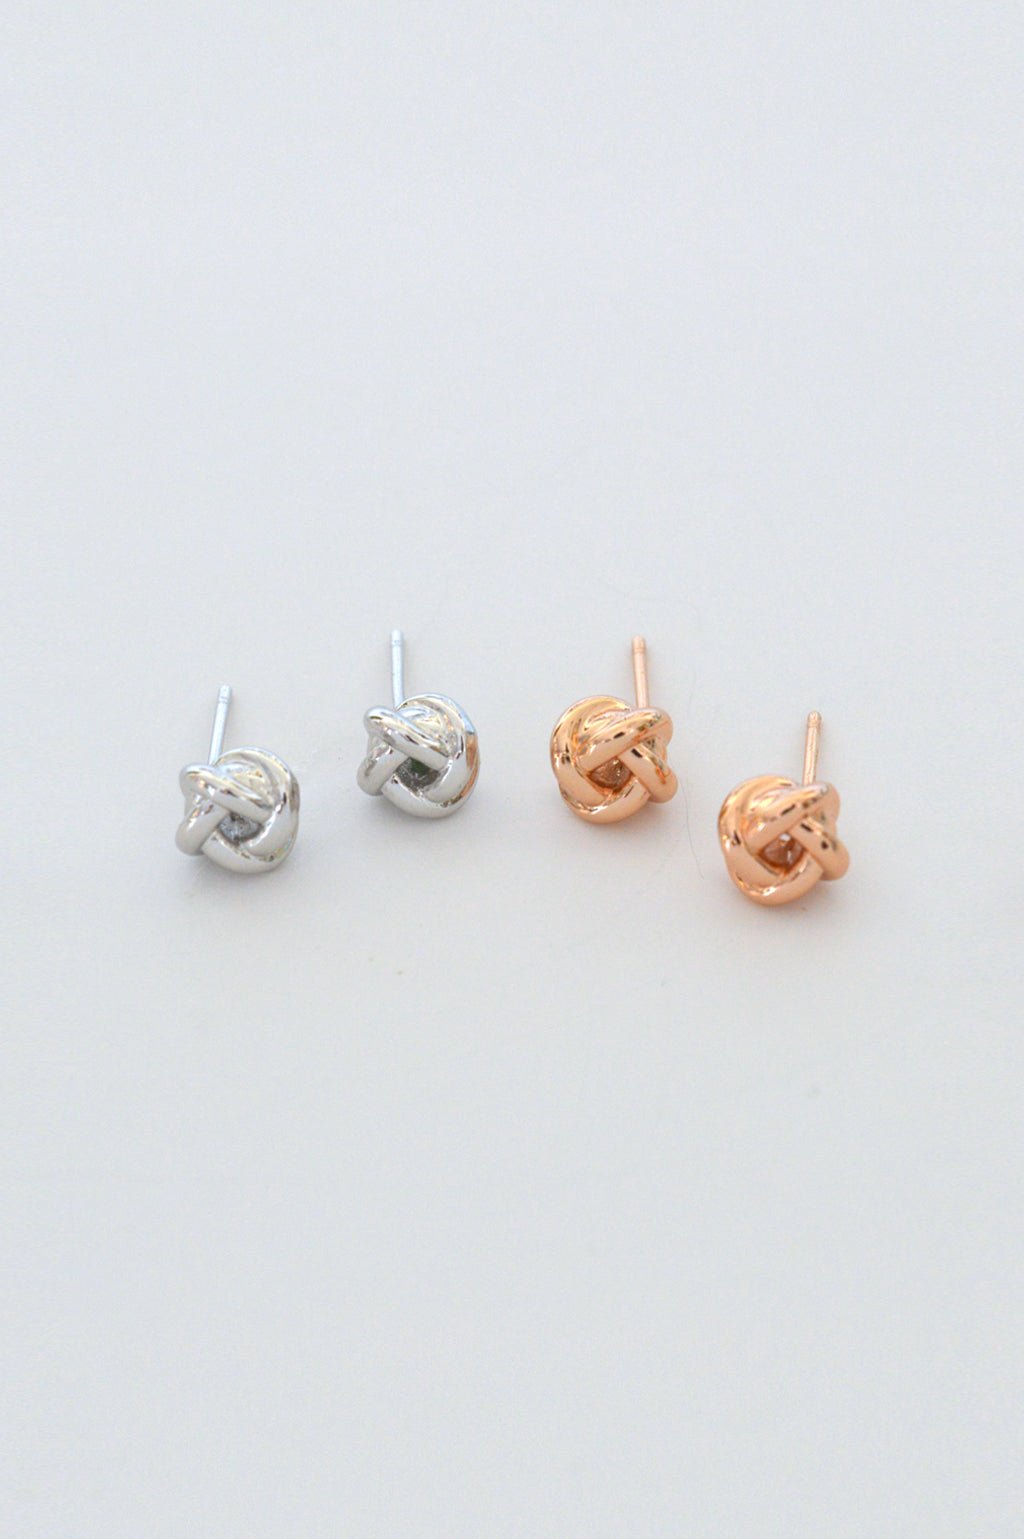 Beck & Boosh small sailor knot studs in rose gold and silver simple classic and nautical stud design